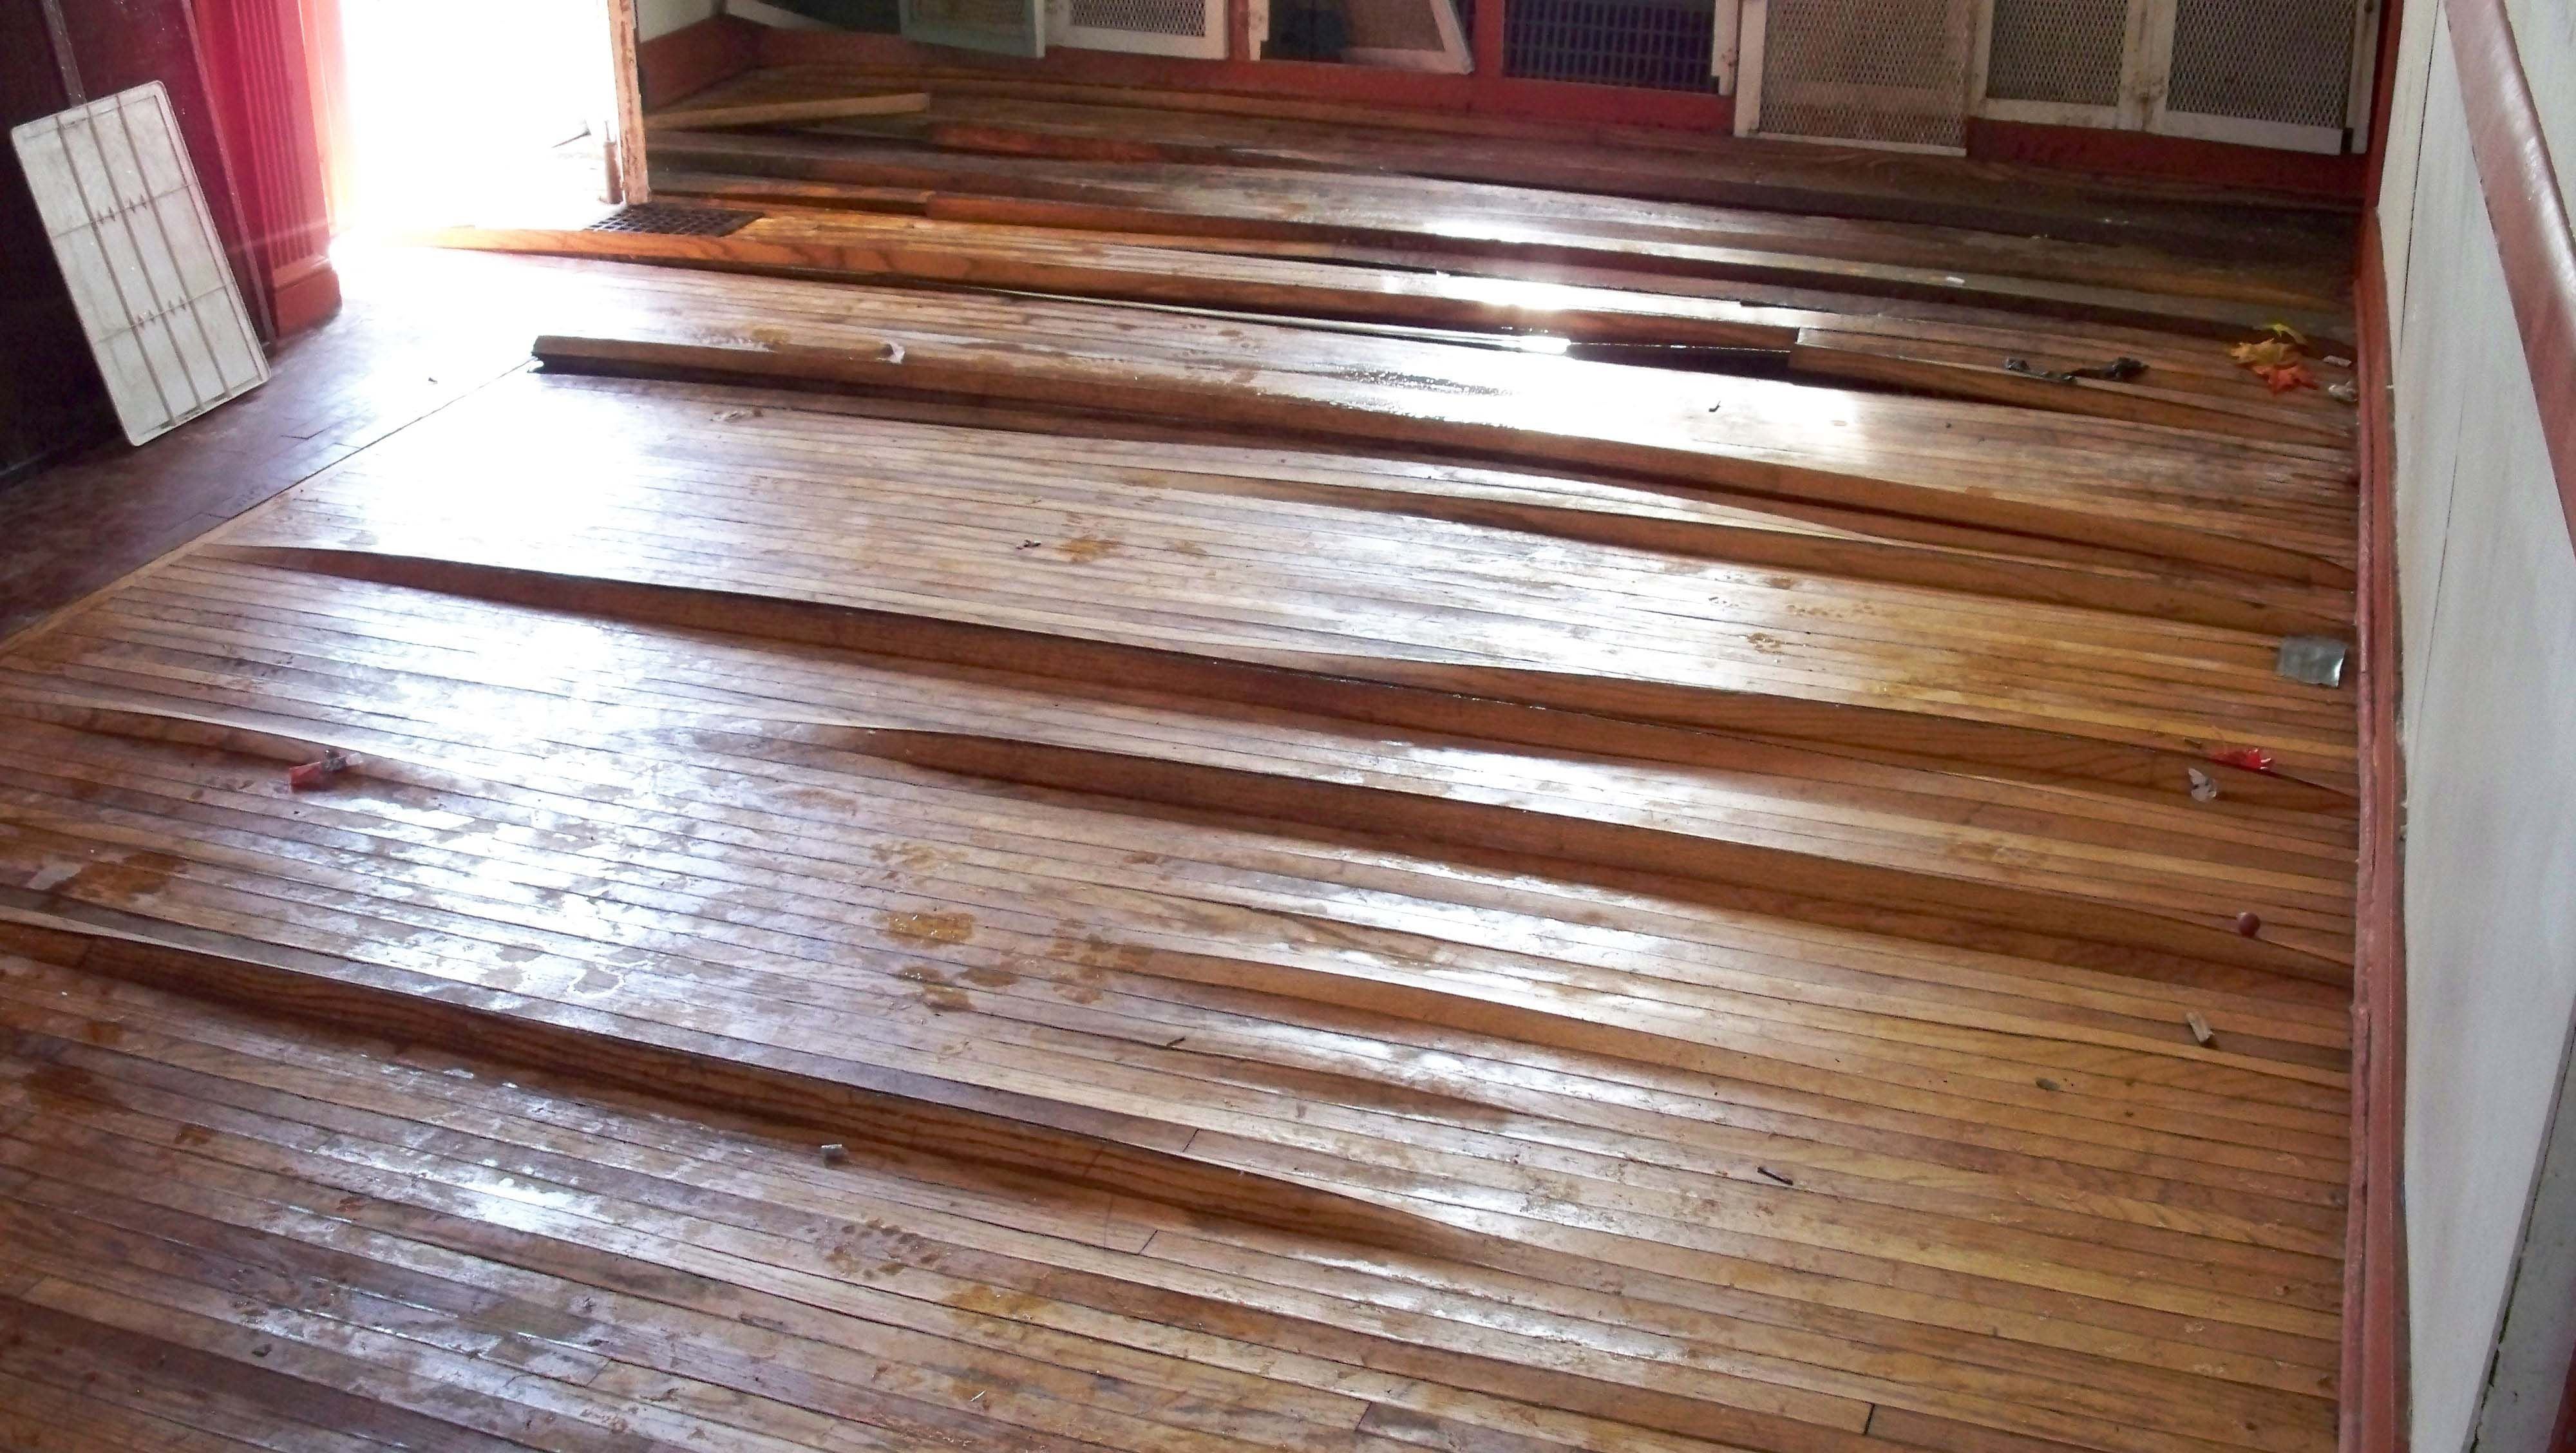 how much to refinish hardwood floors yourself of how much to refinish hardwood floors adventures in staining my red with how much to refinish hardwood floors hardwood floor water damage warping hardwood floors